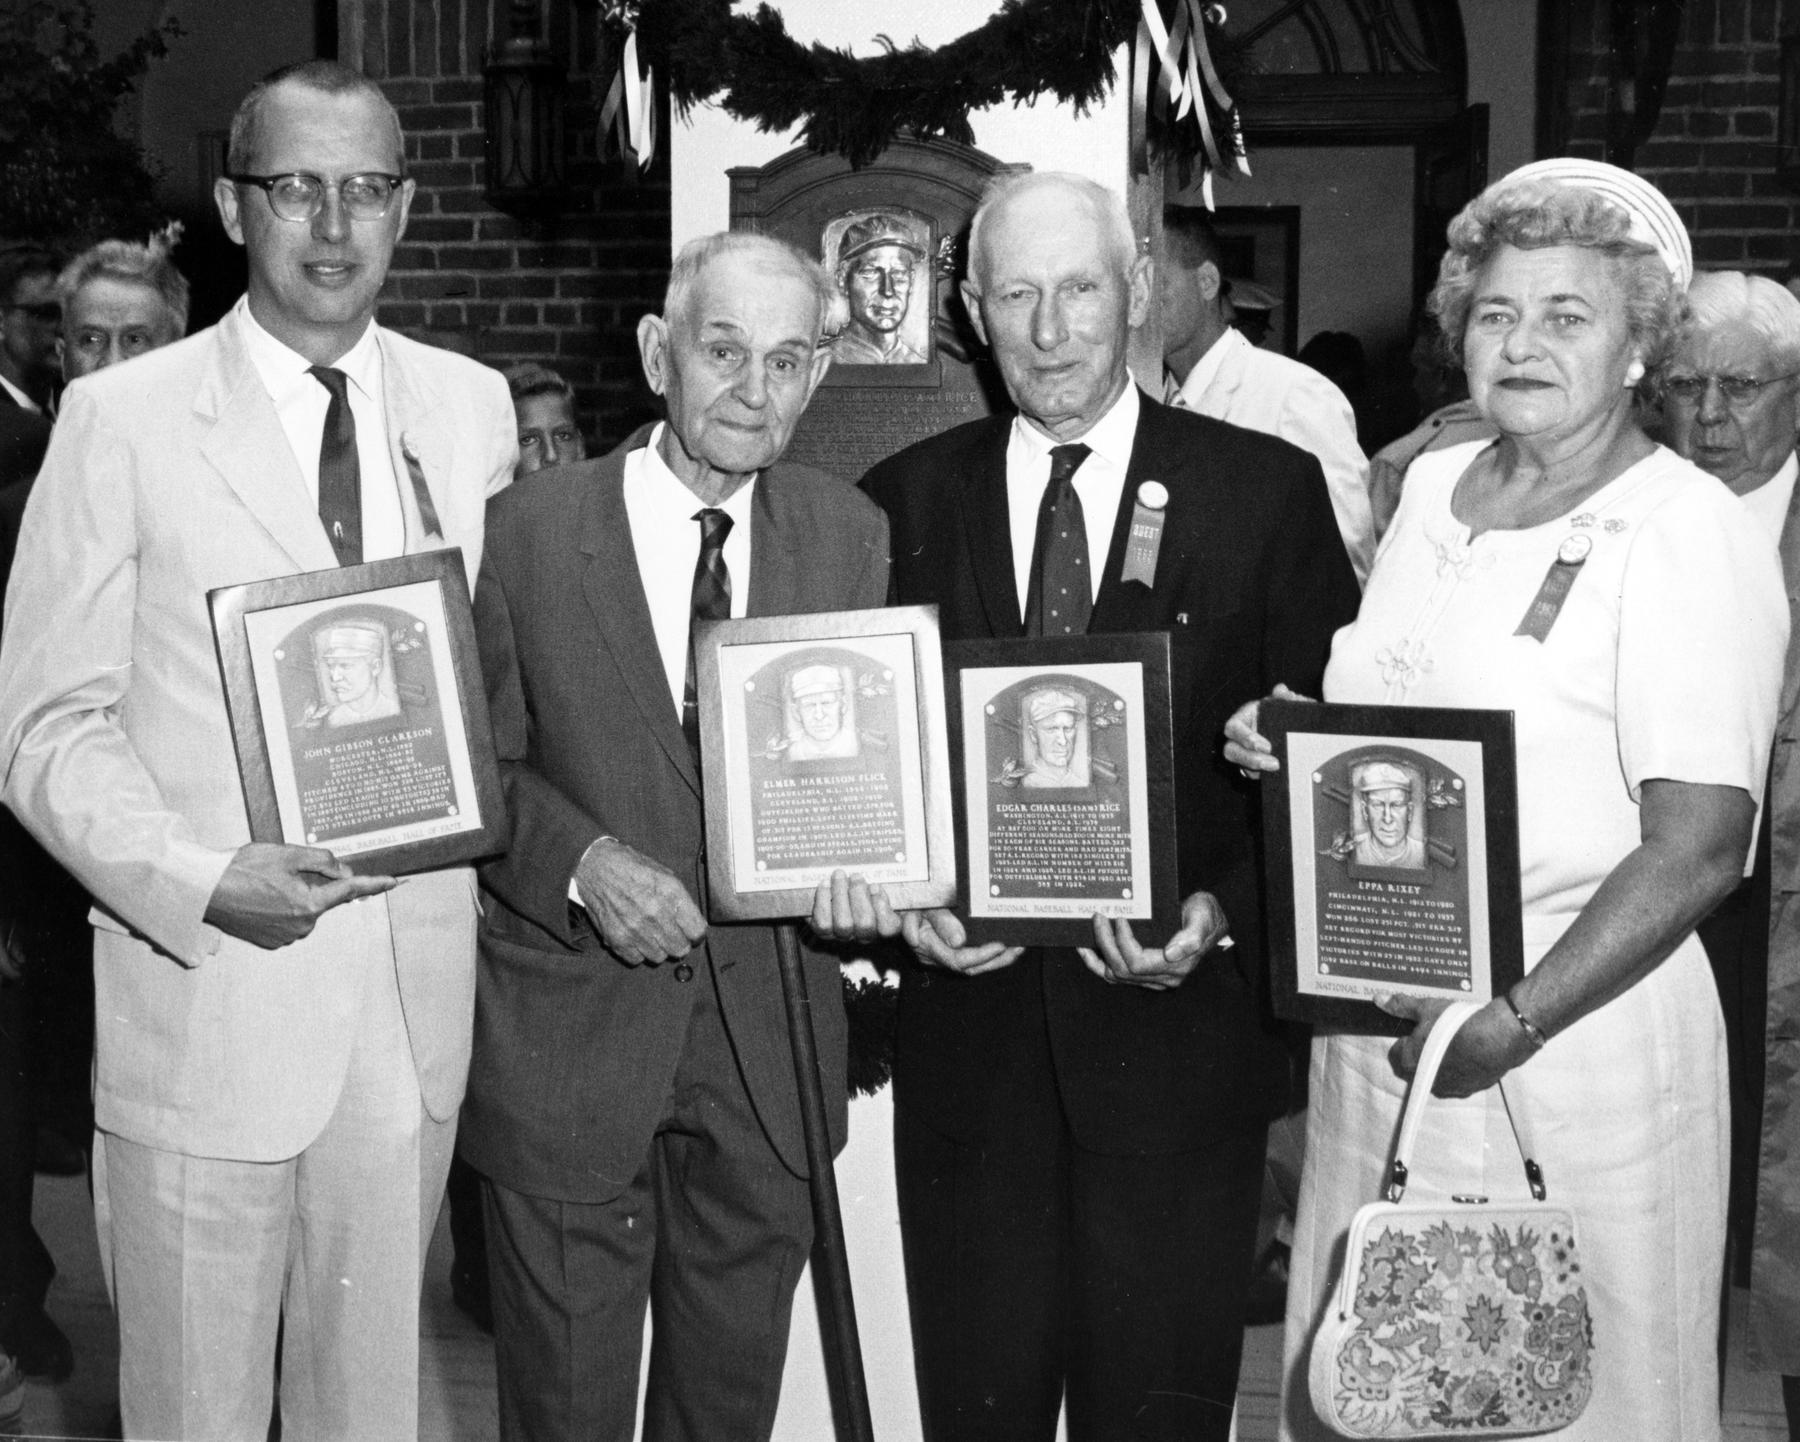 The Class of 1963 and deceased members' representatives hold their new plaques. From left to right:  Representative of John Clarkson, Elmer Flick, Sam Rice and Eppa Rixey's daughter. (National Baseball Hall of Fame Library)